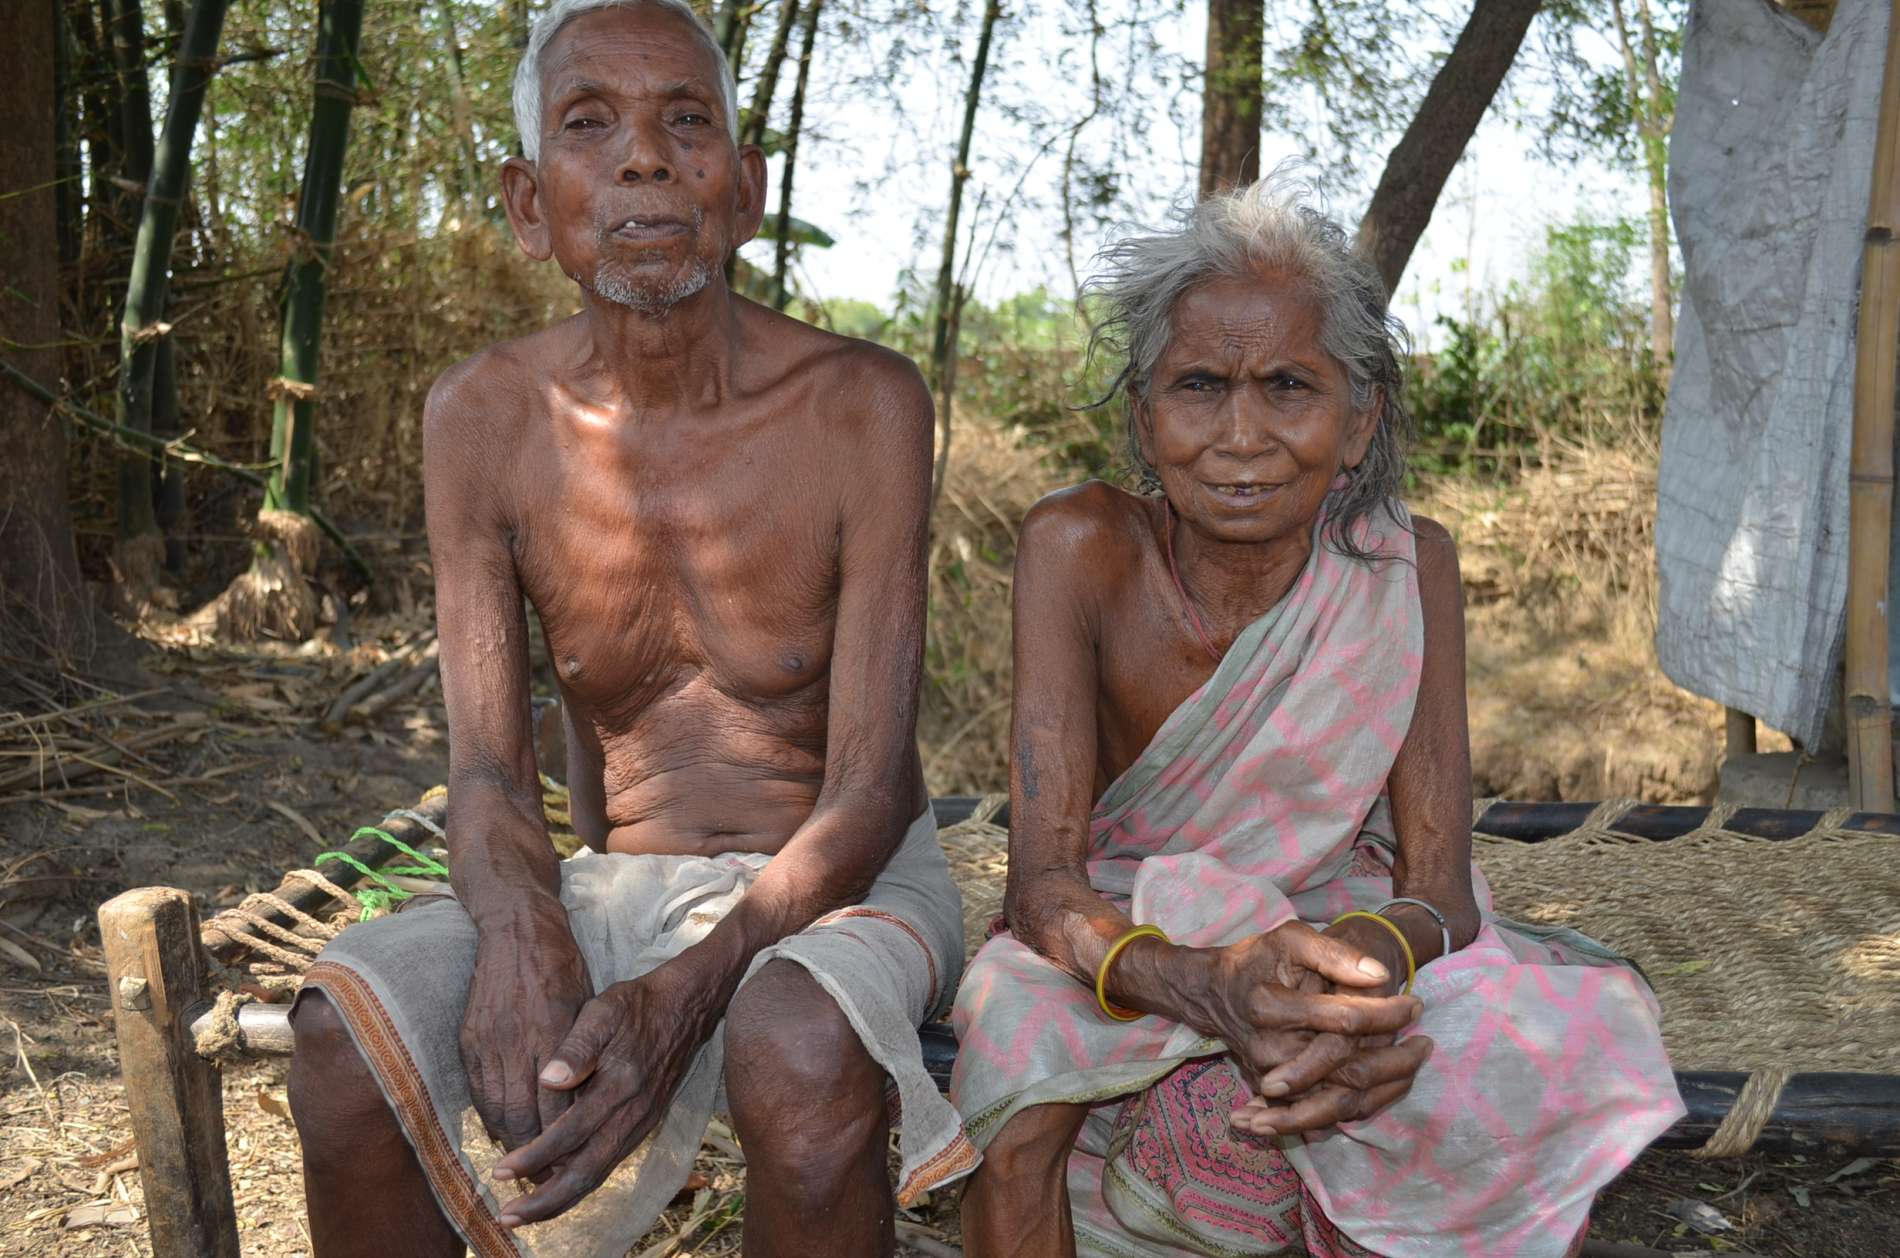 Surveys by doctors, midwives and scientists have recorded many cases of infertility in villages surrounding the uranium mines. Raju Patro, 81, and Anjani, his wife, 79, when younger, were unable to conceive and want to know if exposure to radiation was the cause. UCIL denies it. (Photo : Ashish Birulee)